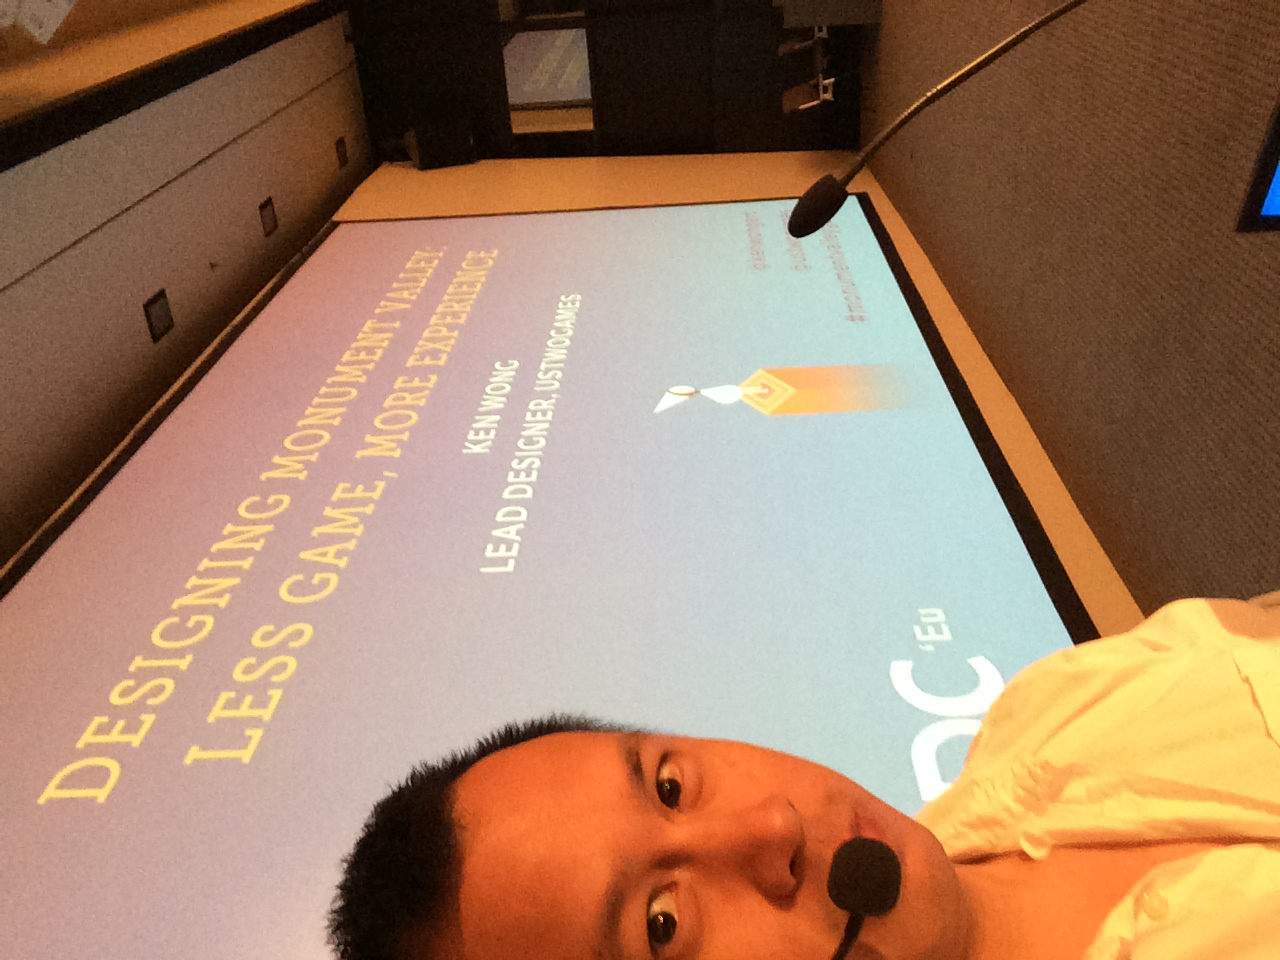 Ken prepares for his GDC Europe talk with a selfie